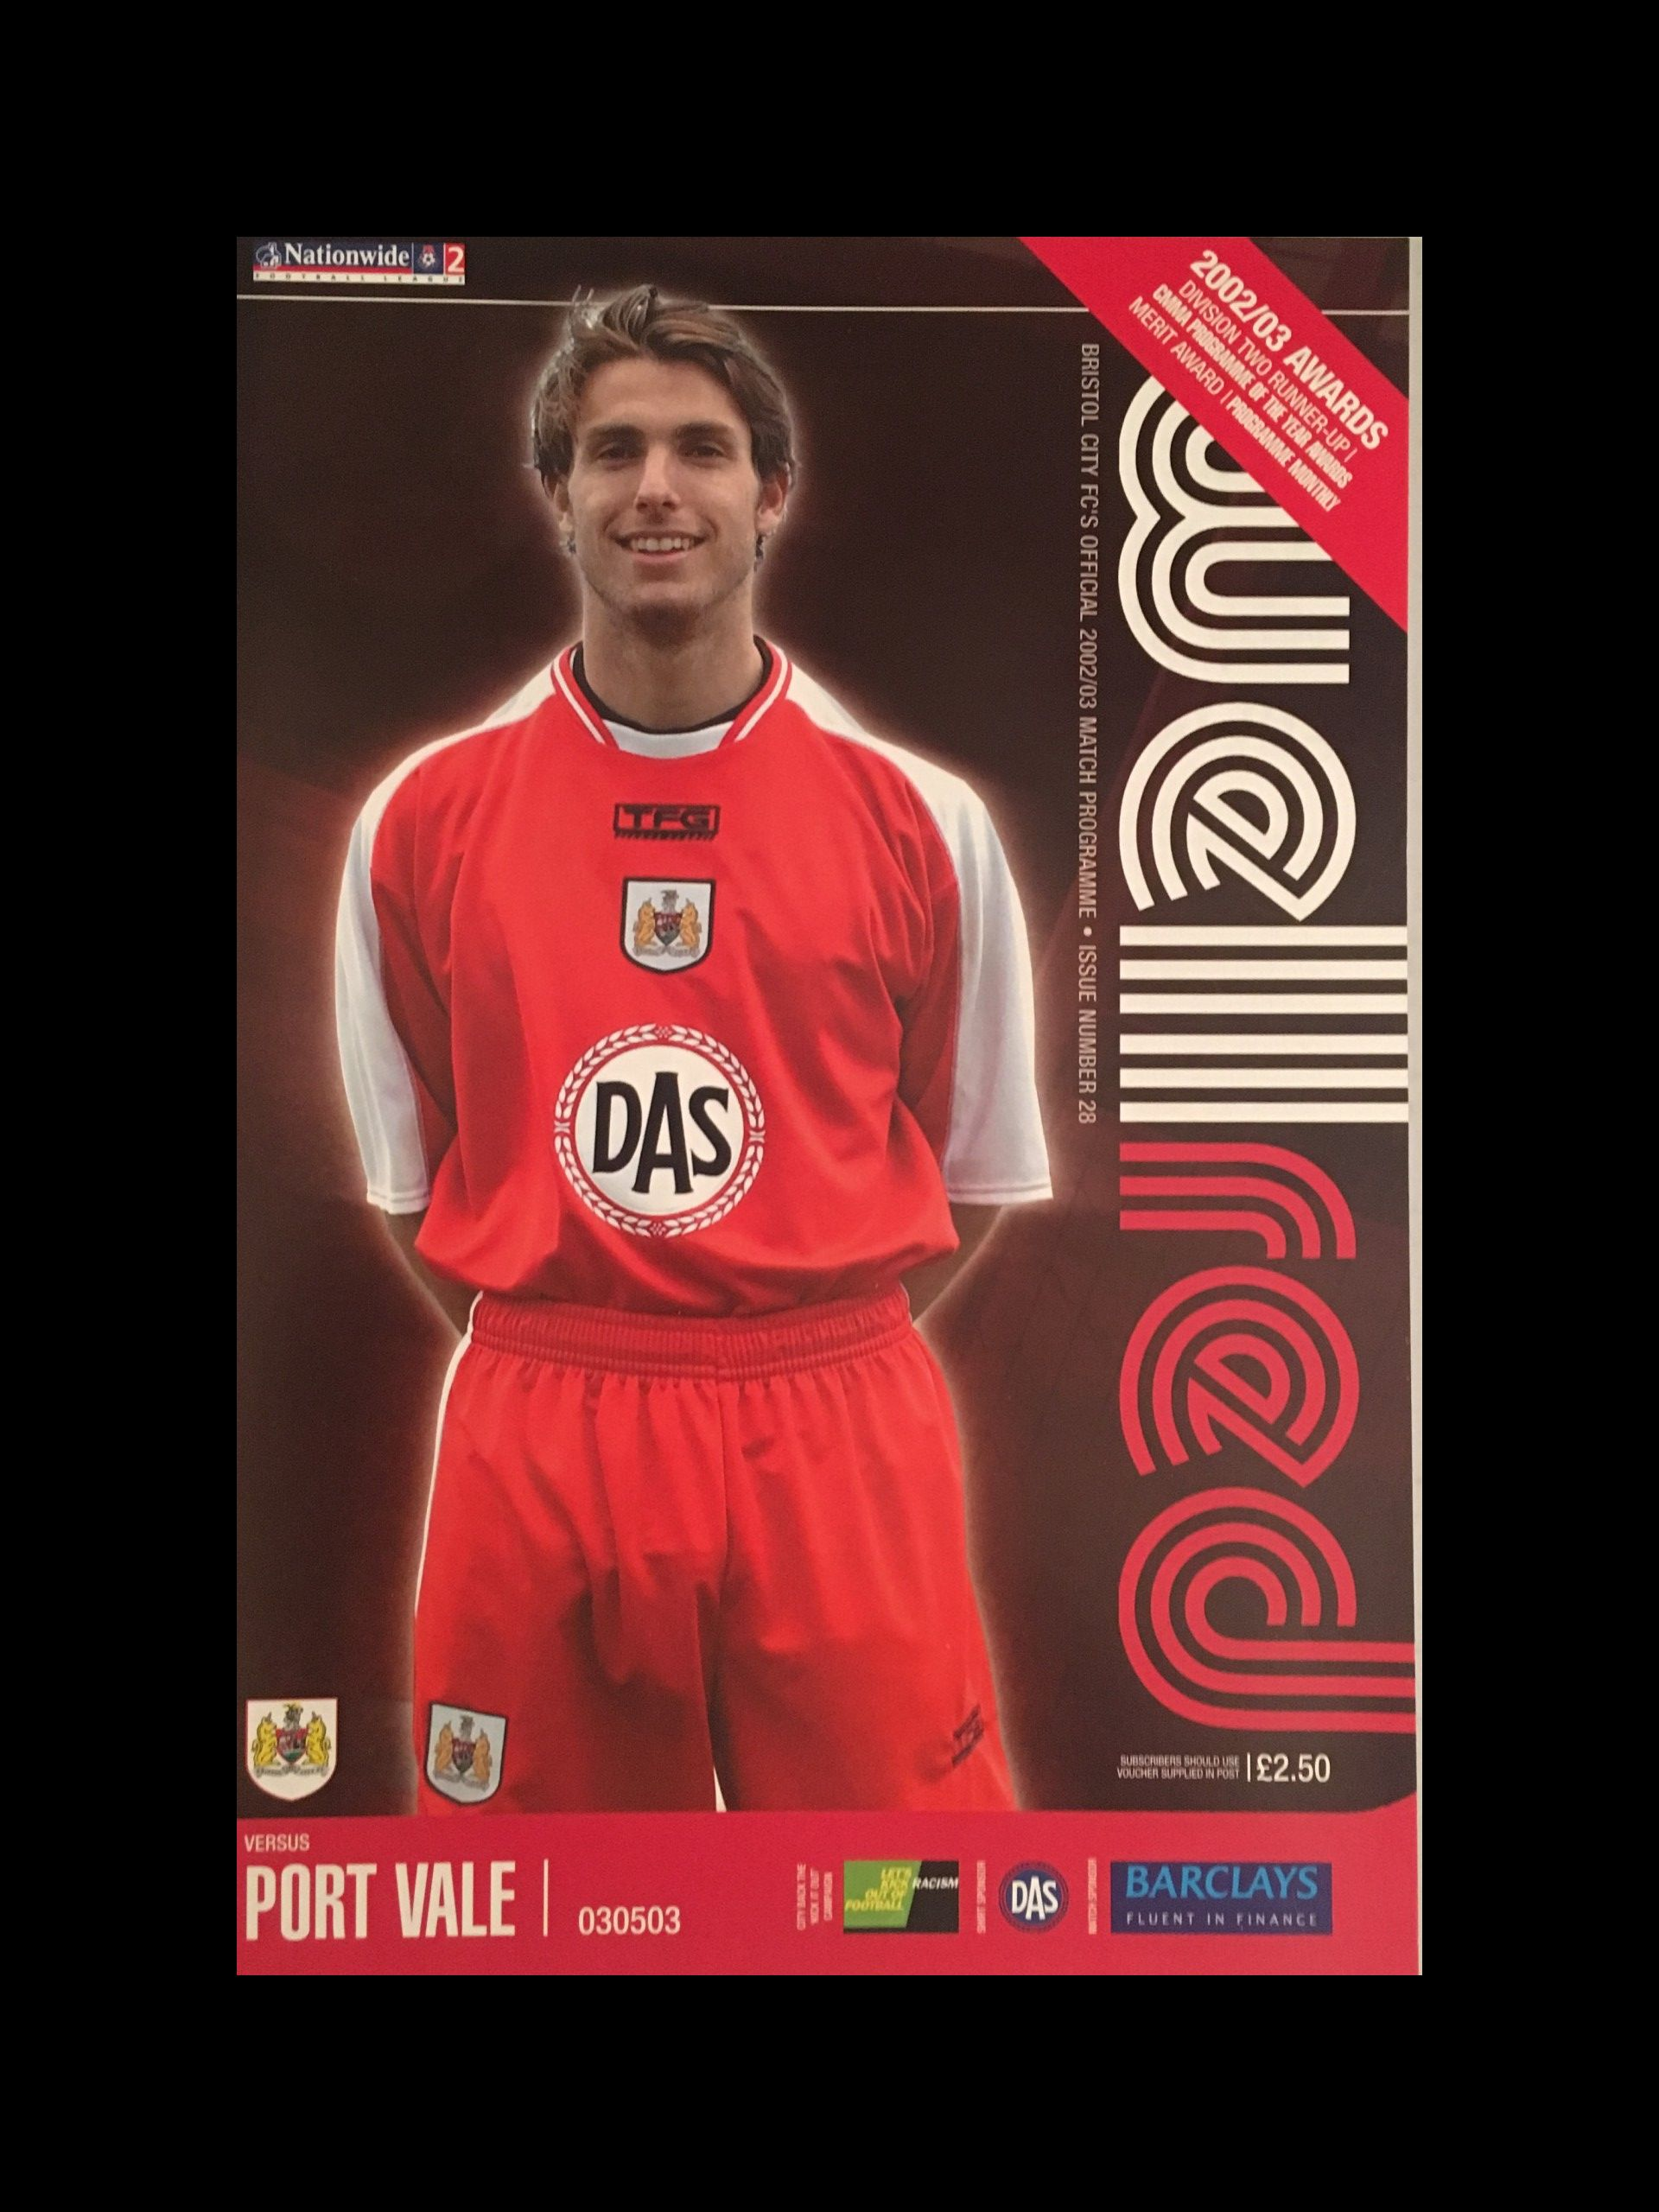 Bristol City v Port Vale 03-05-2003 Programme